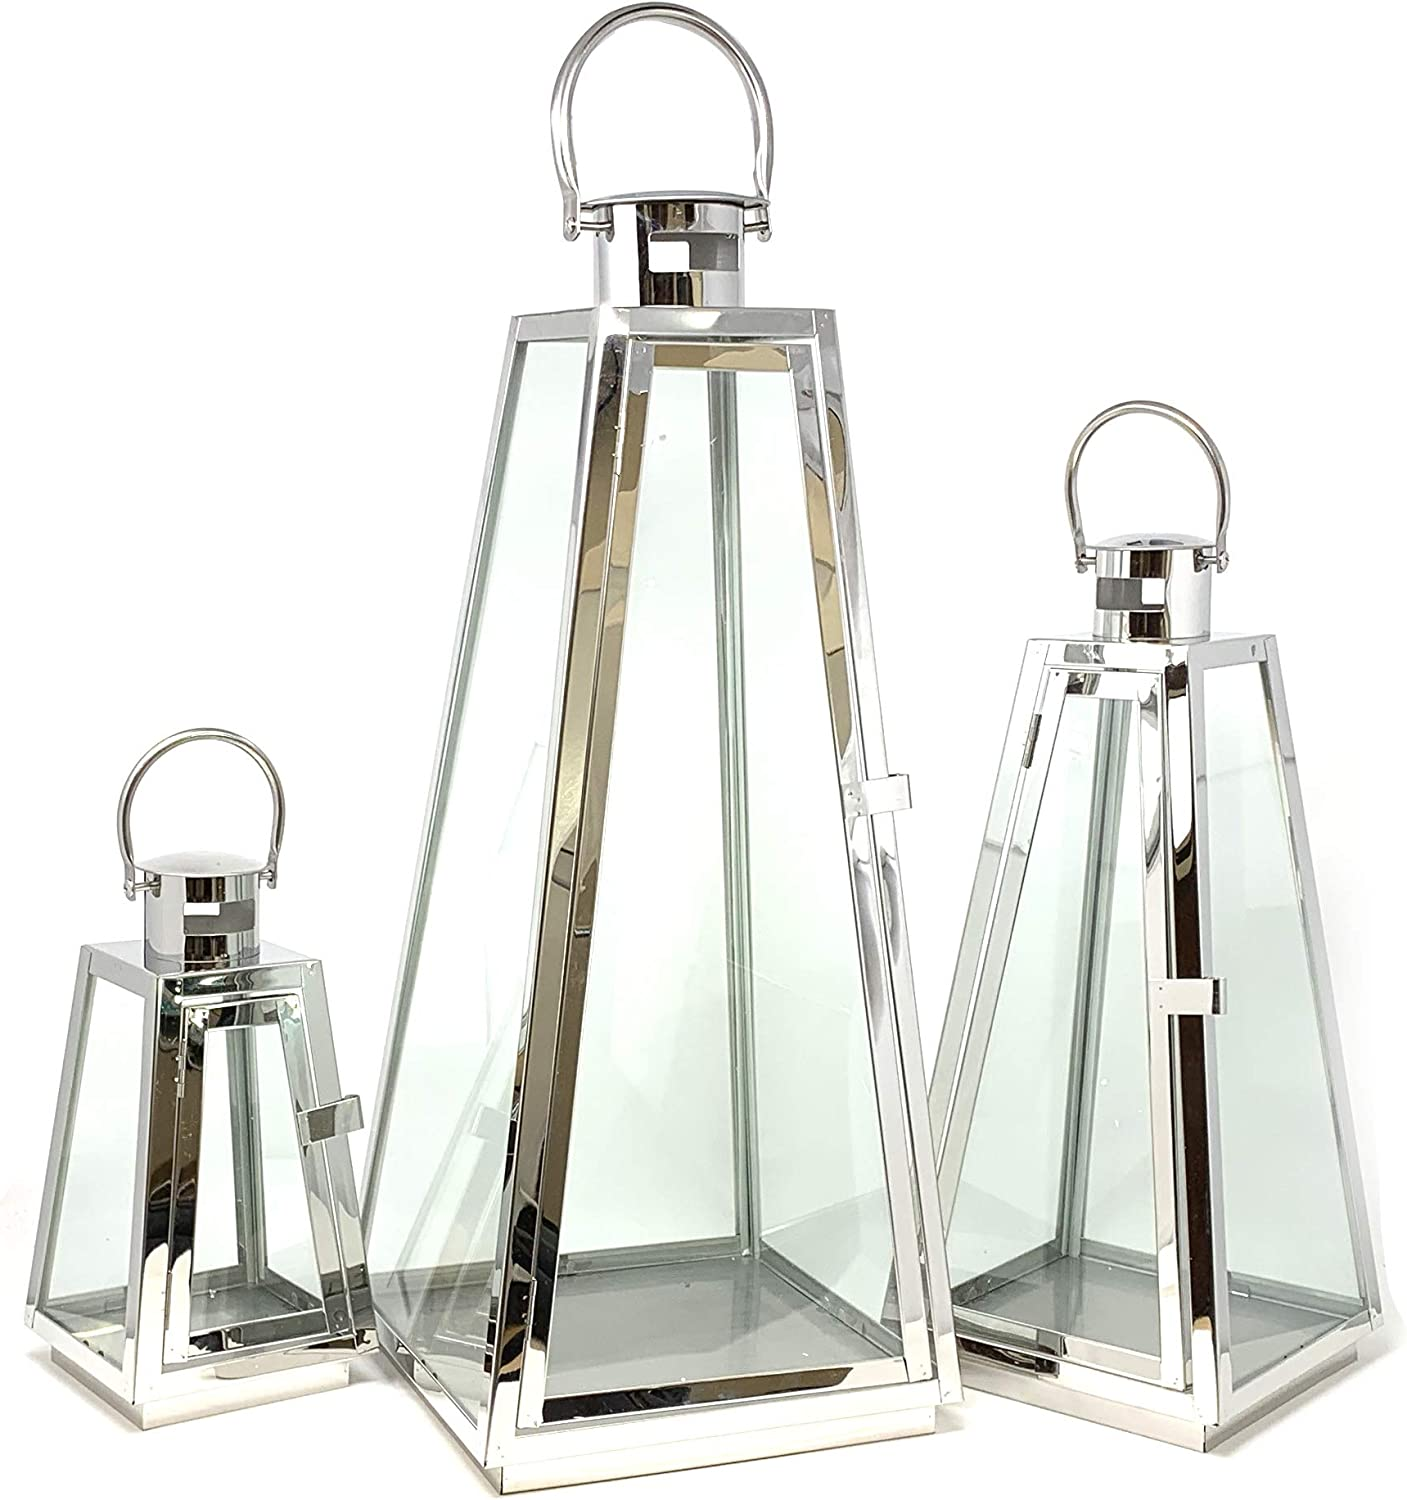 allgala 3-PC Set Jumbo Luxury Modern Indoor/Outdoor Hurricane Candle Lantern Set with Chrome Plated Structure and Tempered Glass-Taper Silver-HD88022